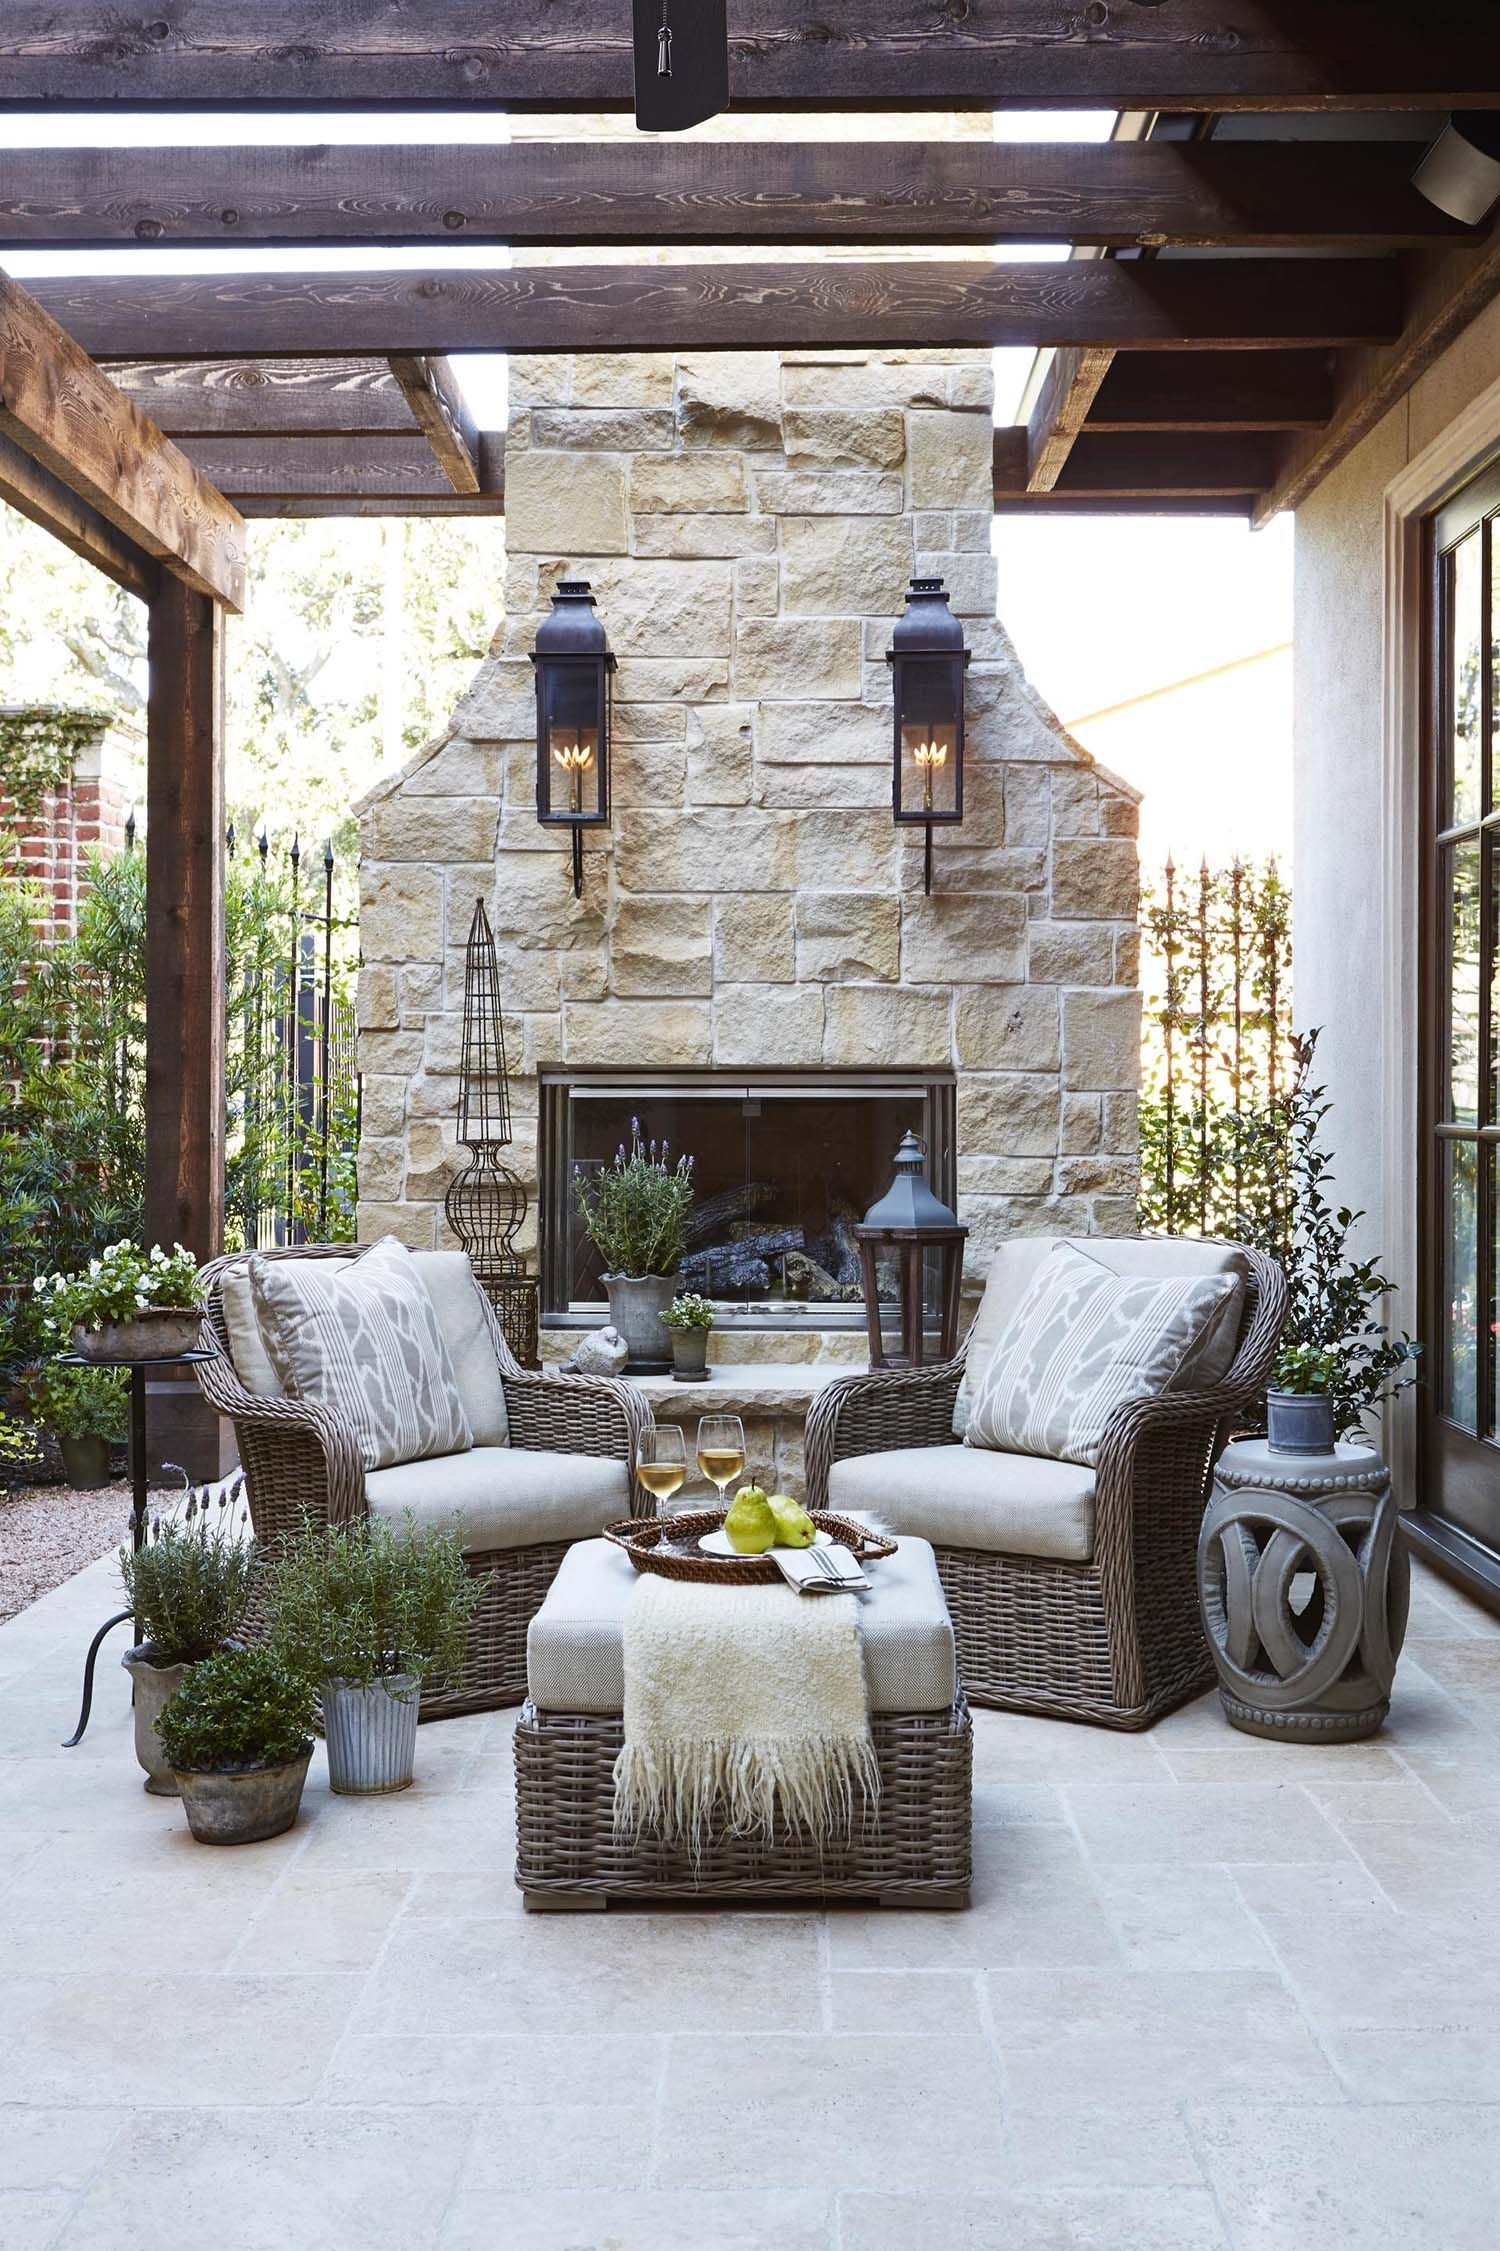 30+ Irresistible Outdoor Fireplace Ideas That Will Leave You Awe Struck